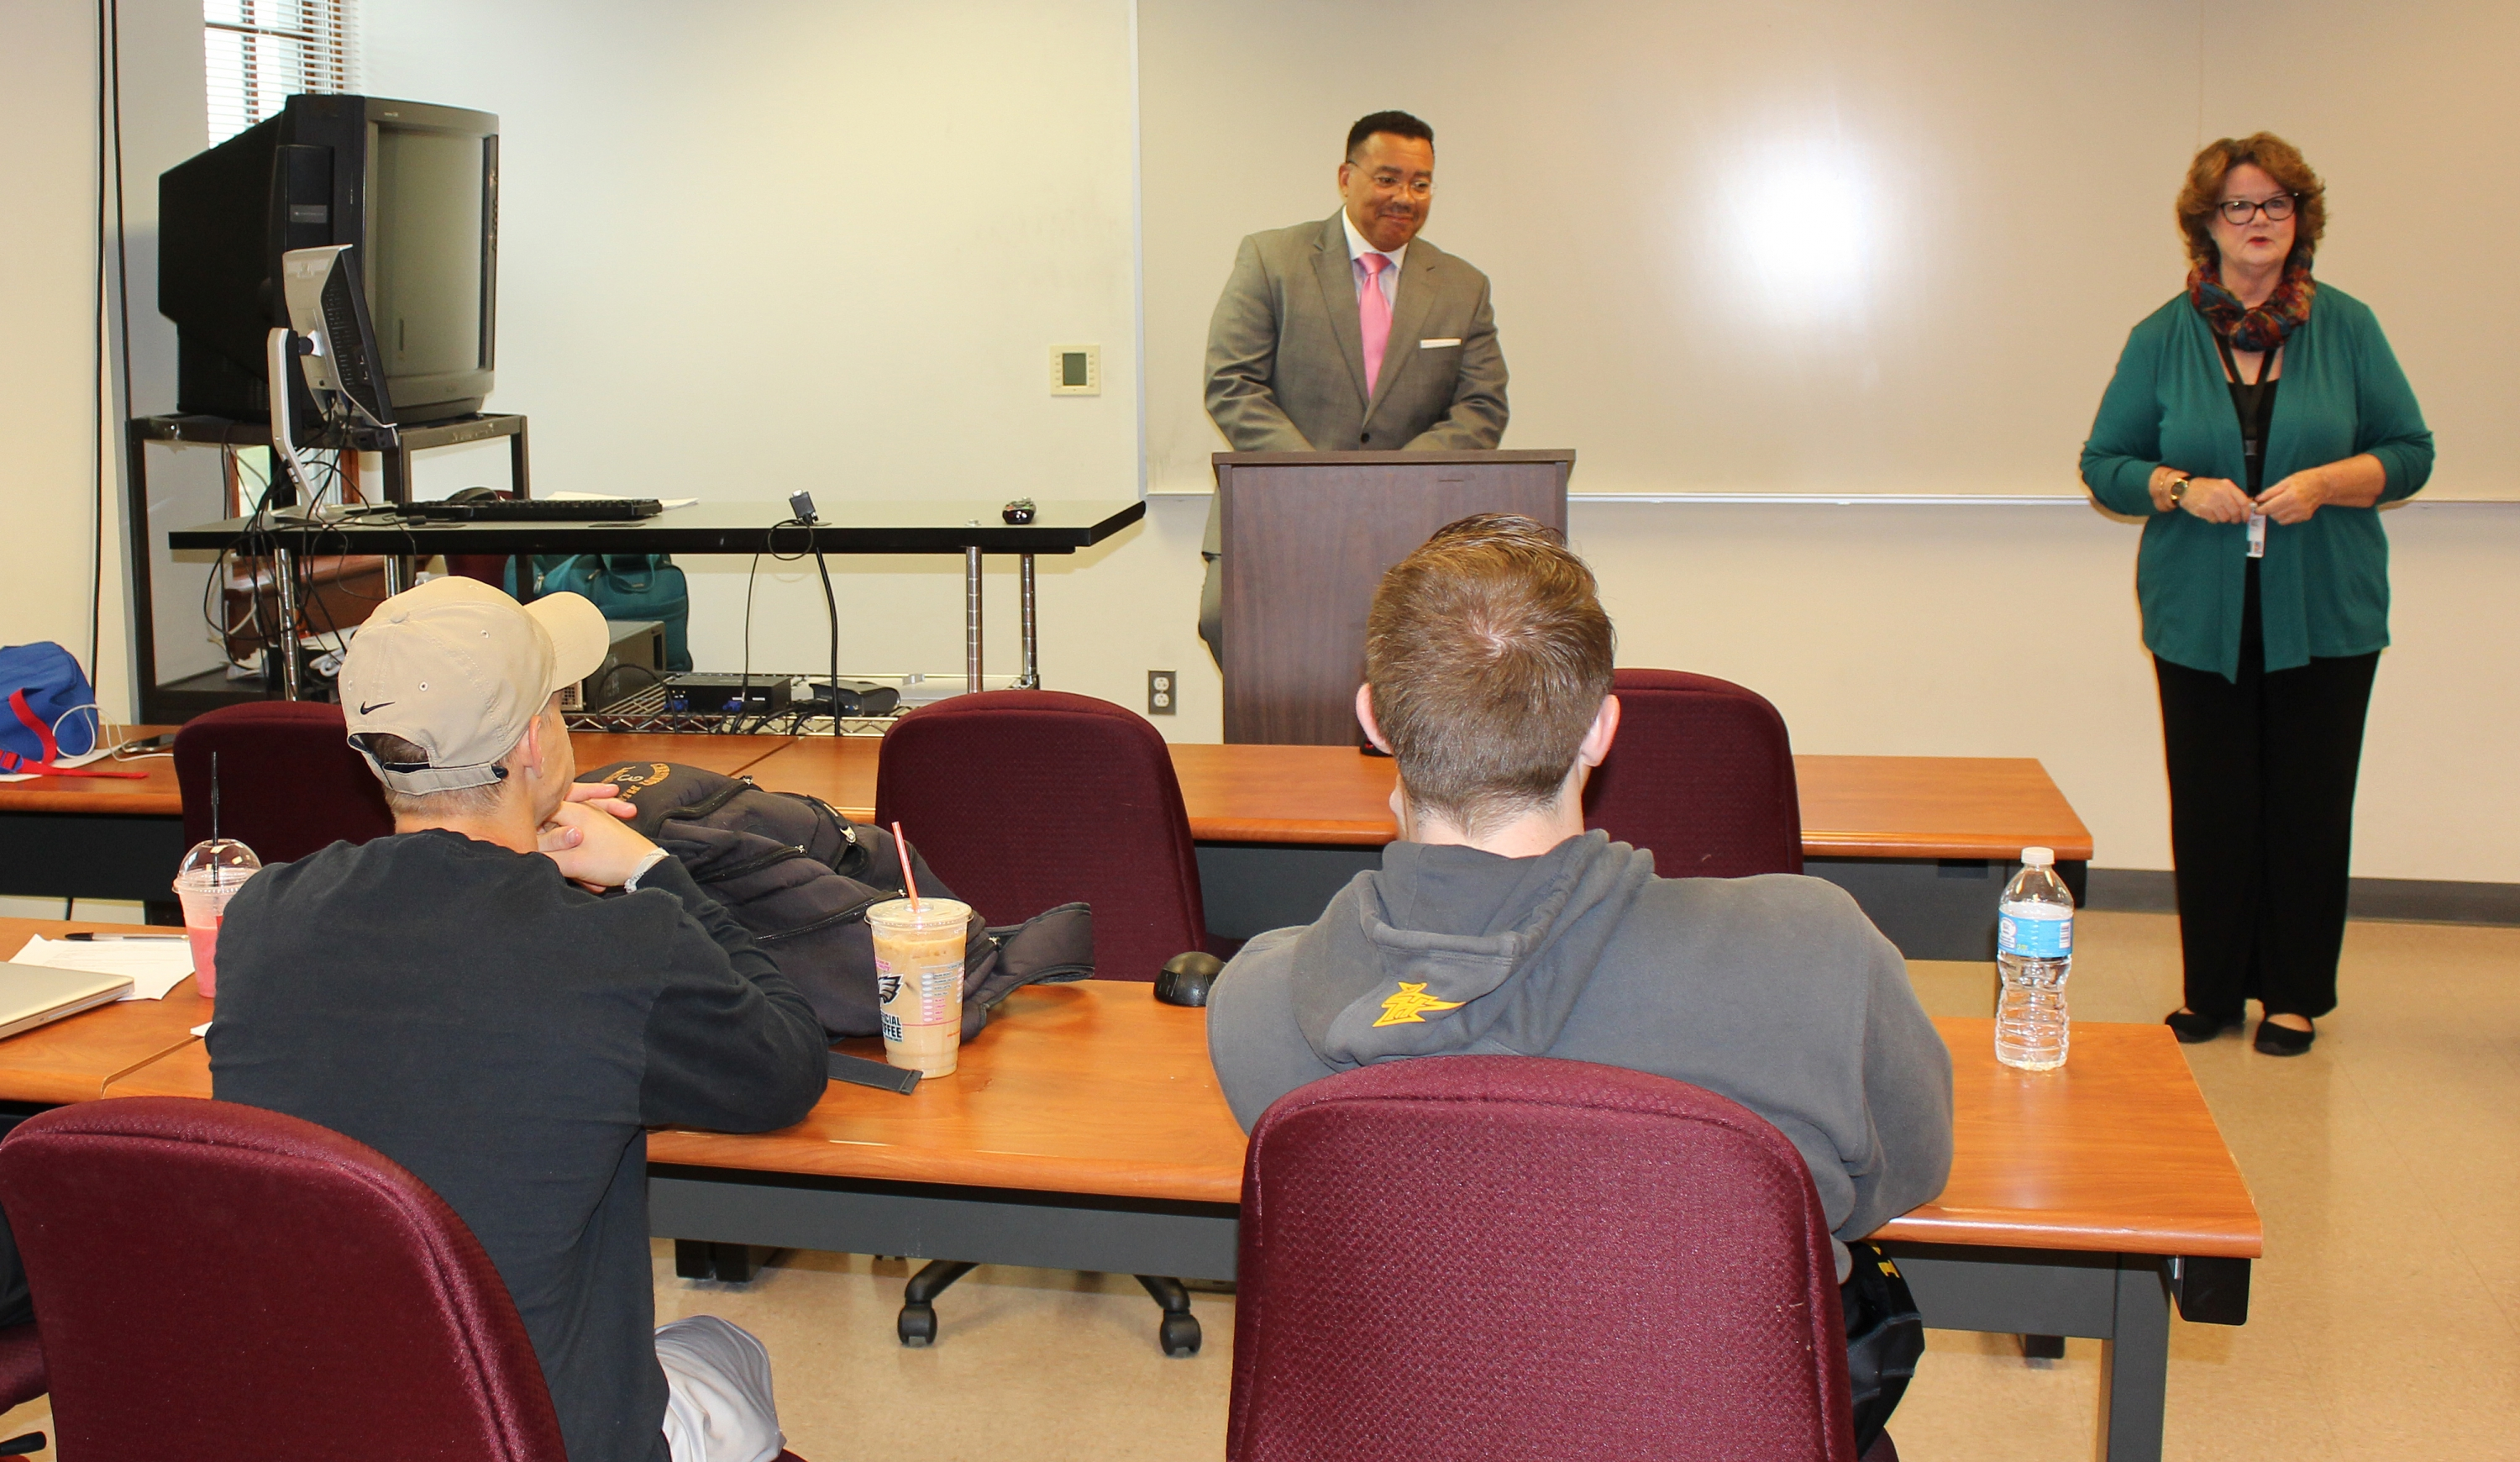 Sara Kitchen, J.D., welcomed Kevin Bethel '08 SCPS before he addressed her criminal justice class. Photo credit: Marilee Gallagher '14